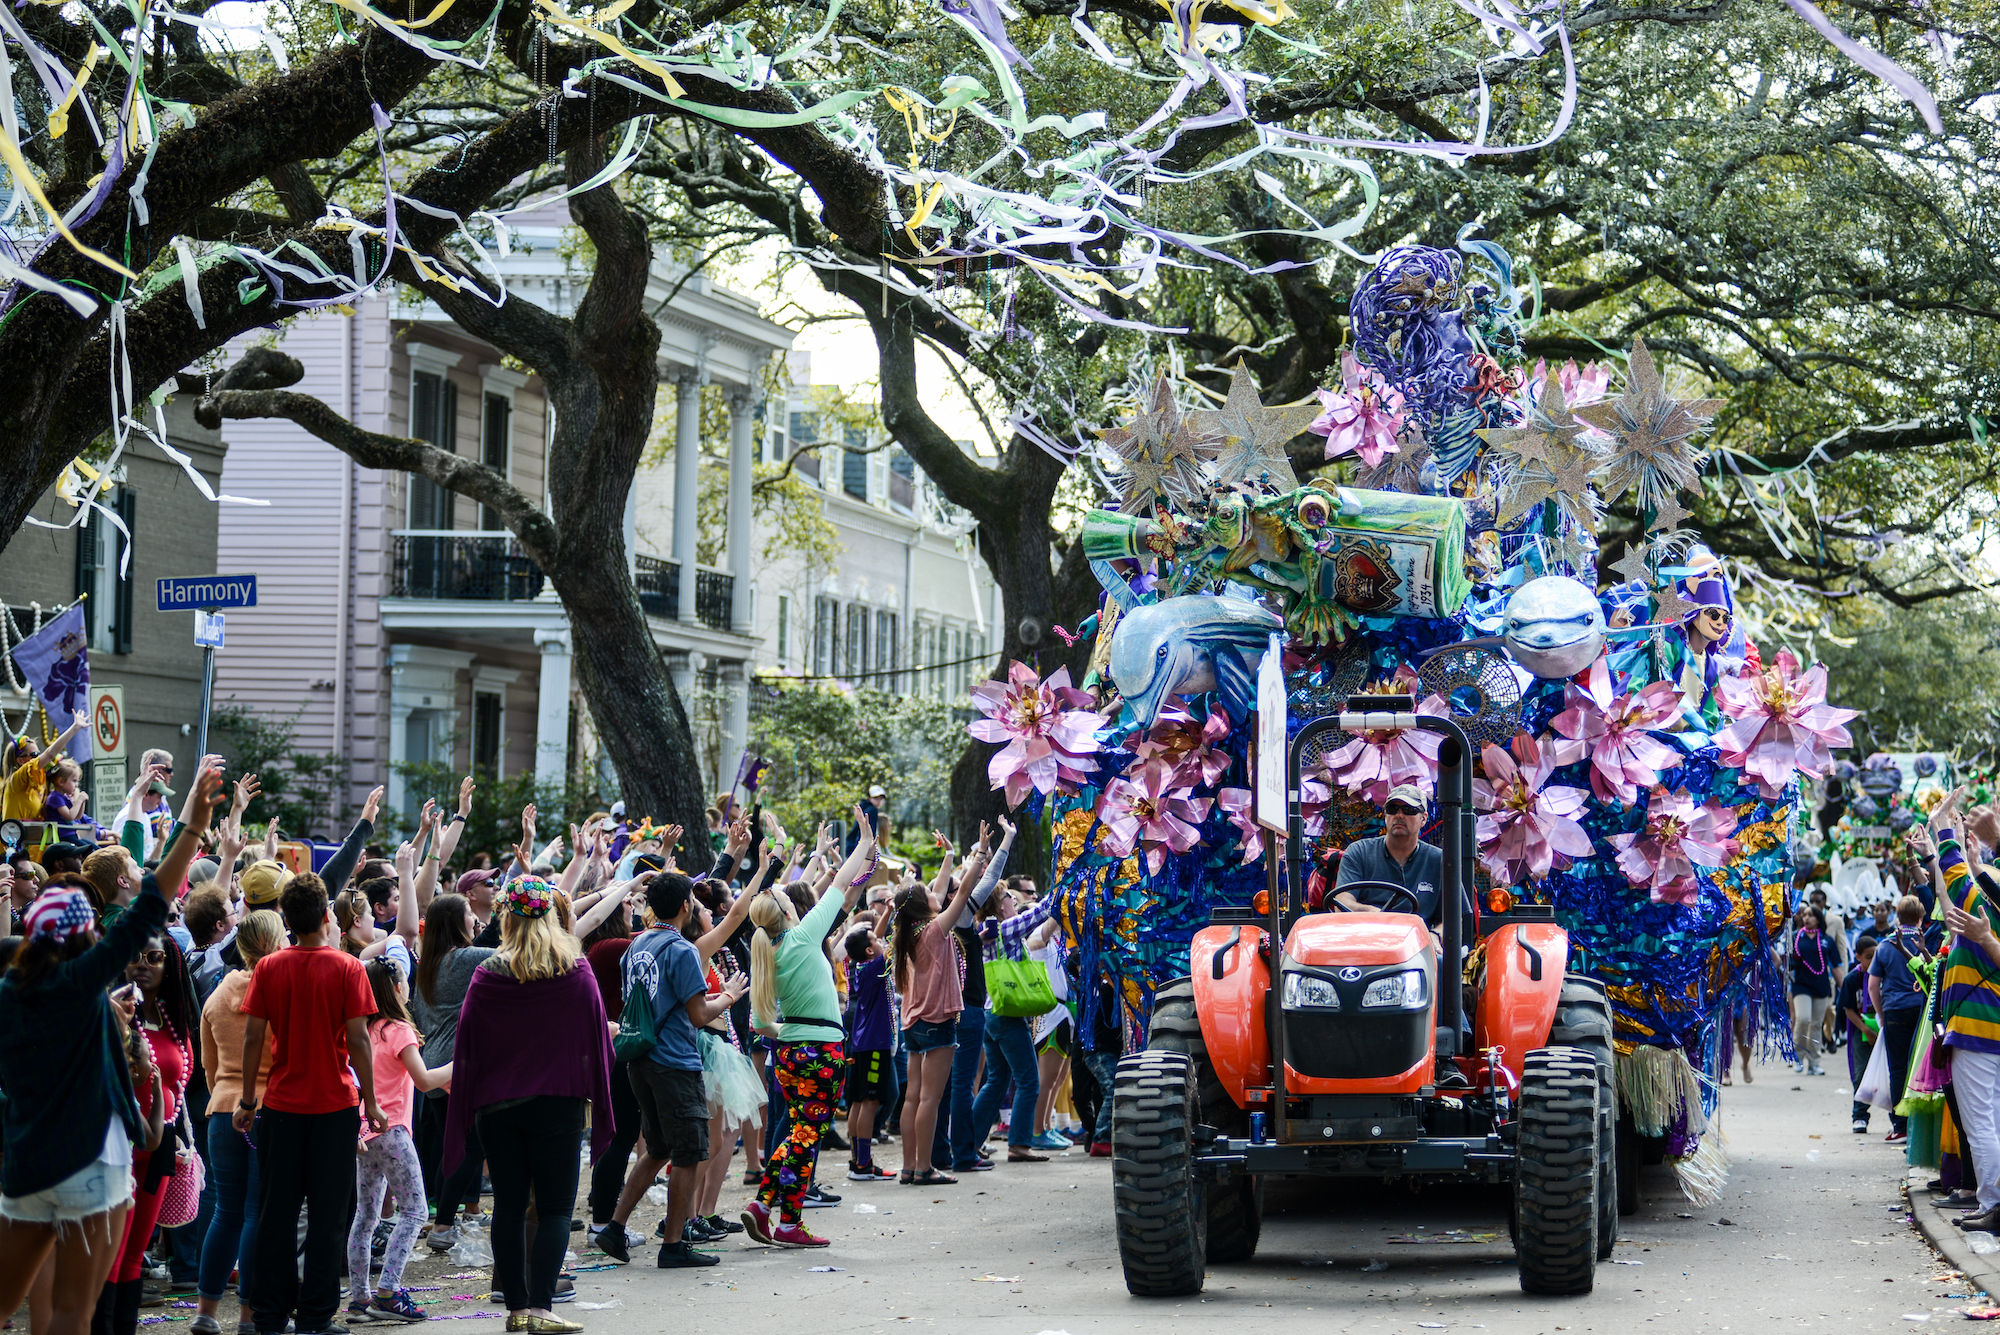 New Orleans Mardi Gras 2019 Everything You Need to Know about Mardi Gras 2020 | AFAR